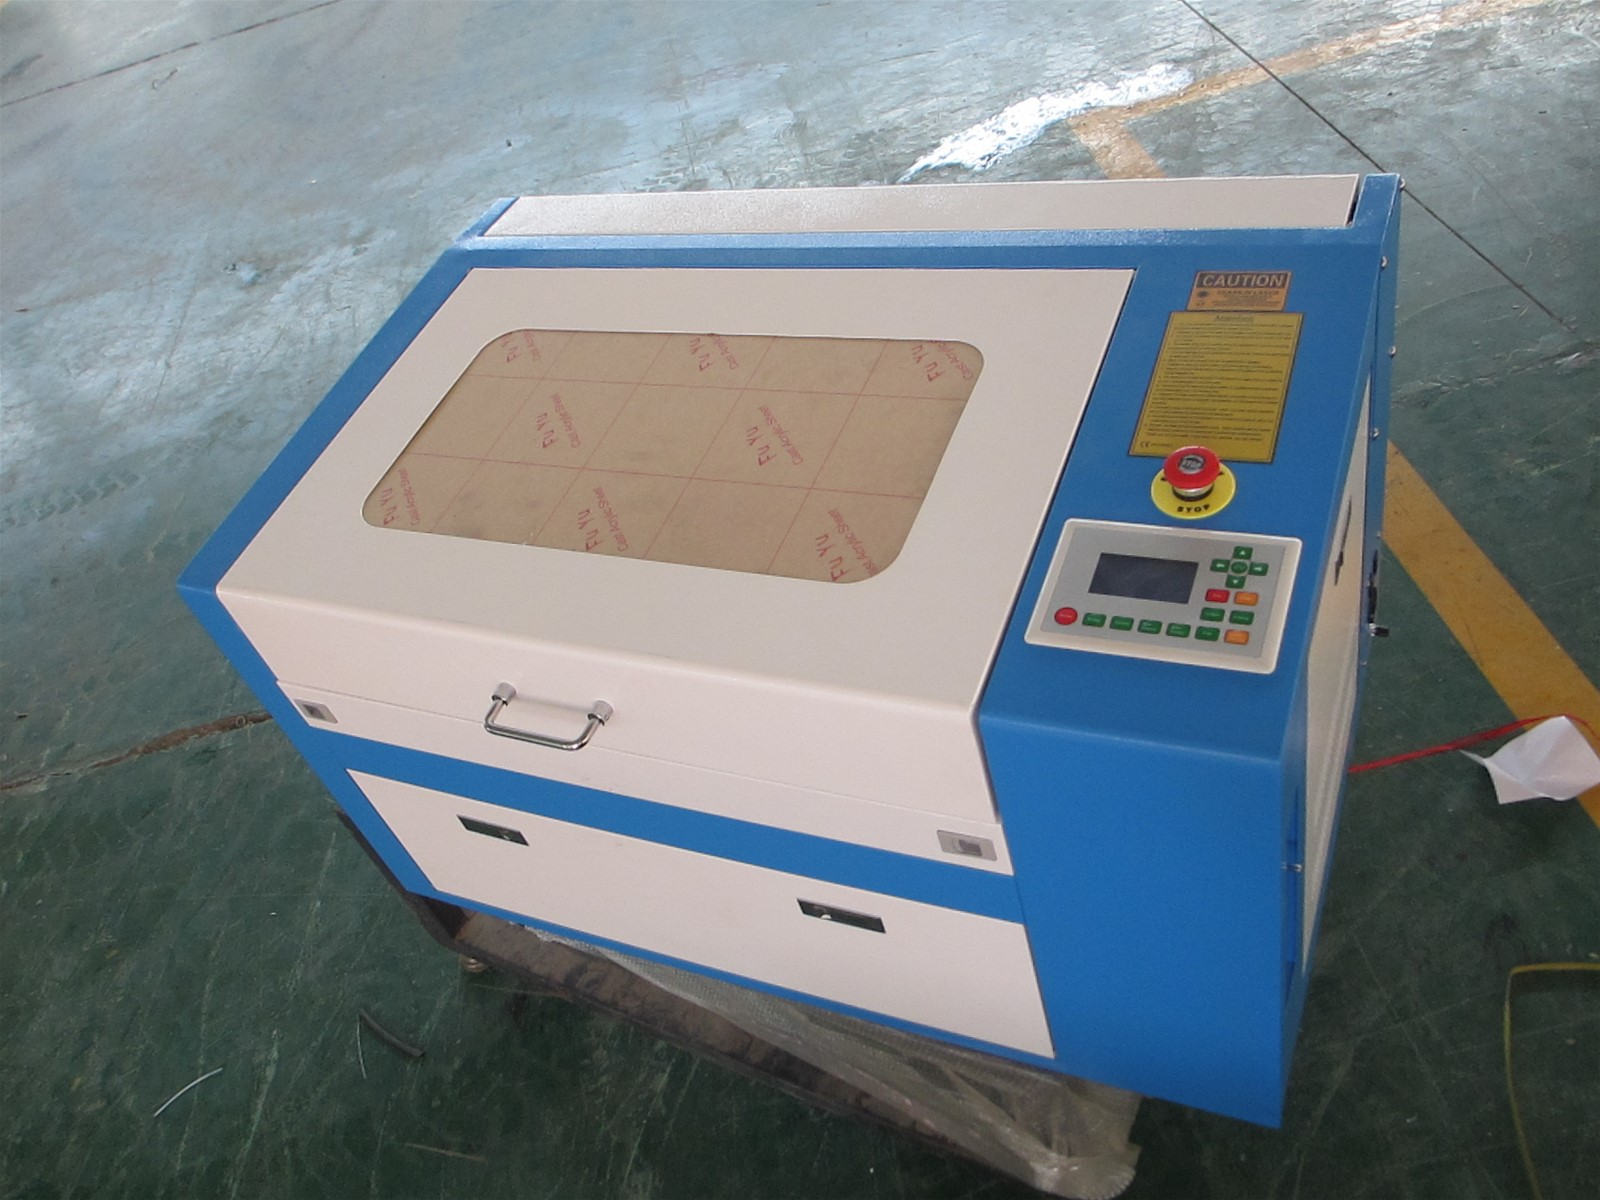 500*300mm laser engraving machine